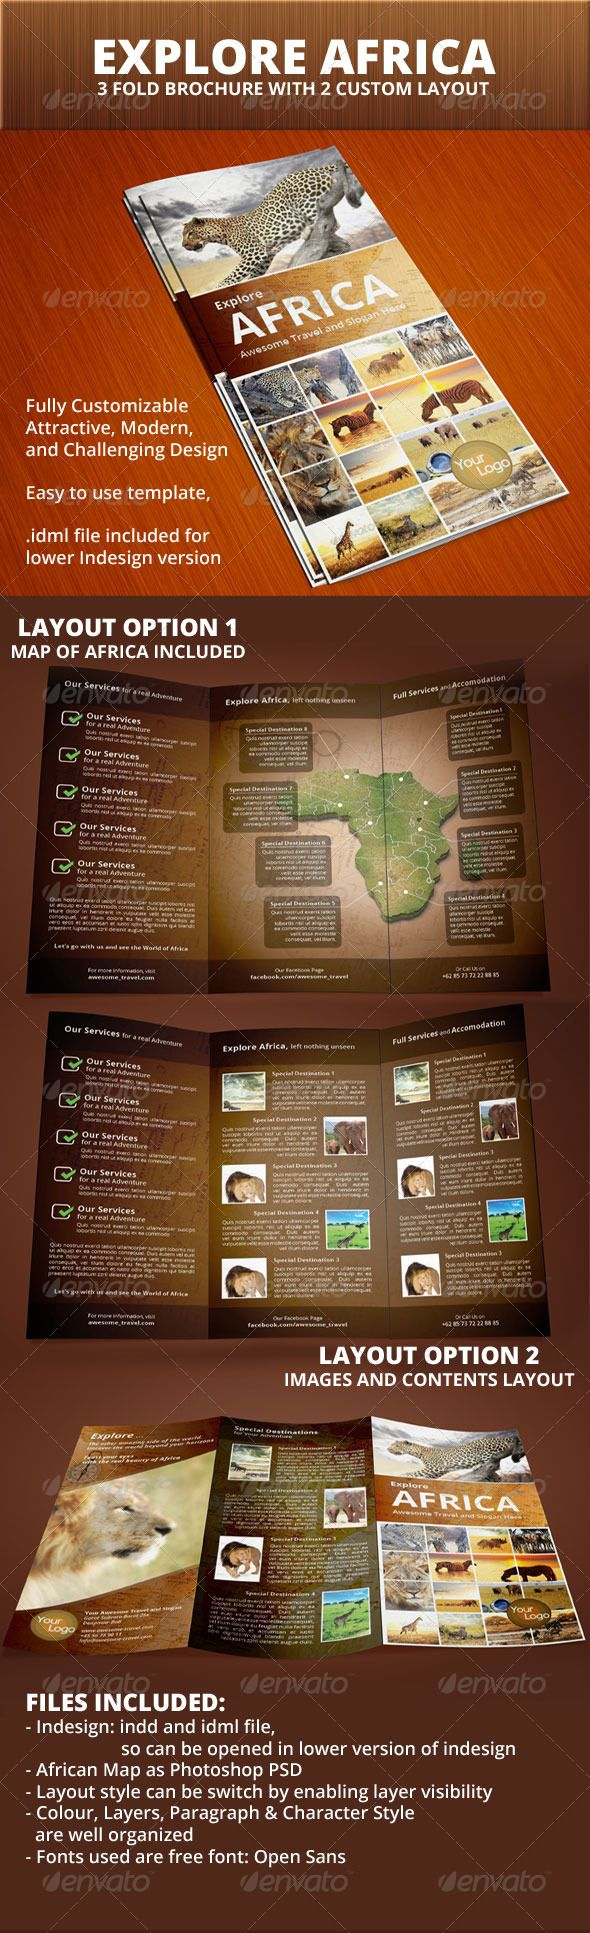 Explore Africa Trifold Brochure 30 best Template